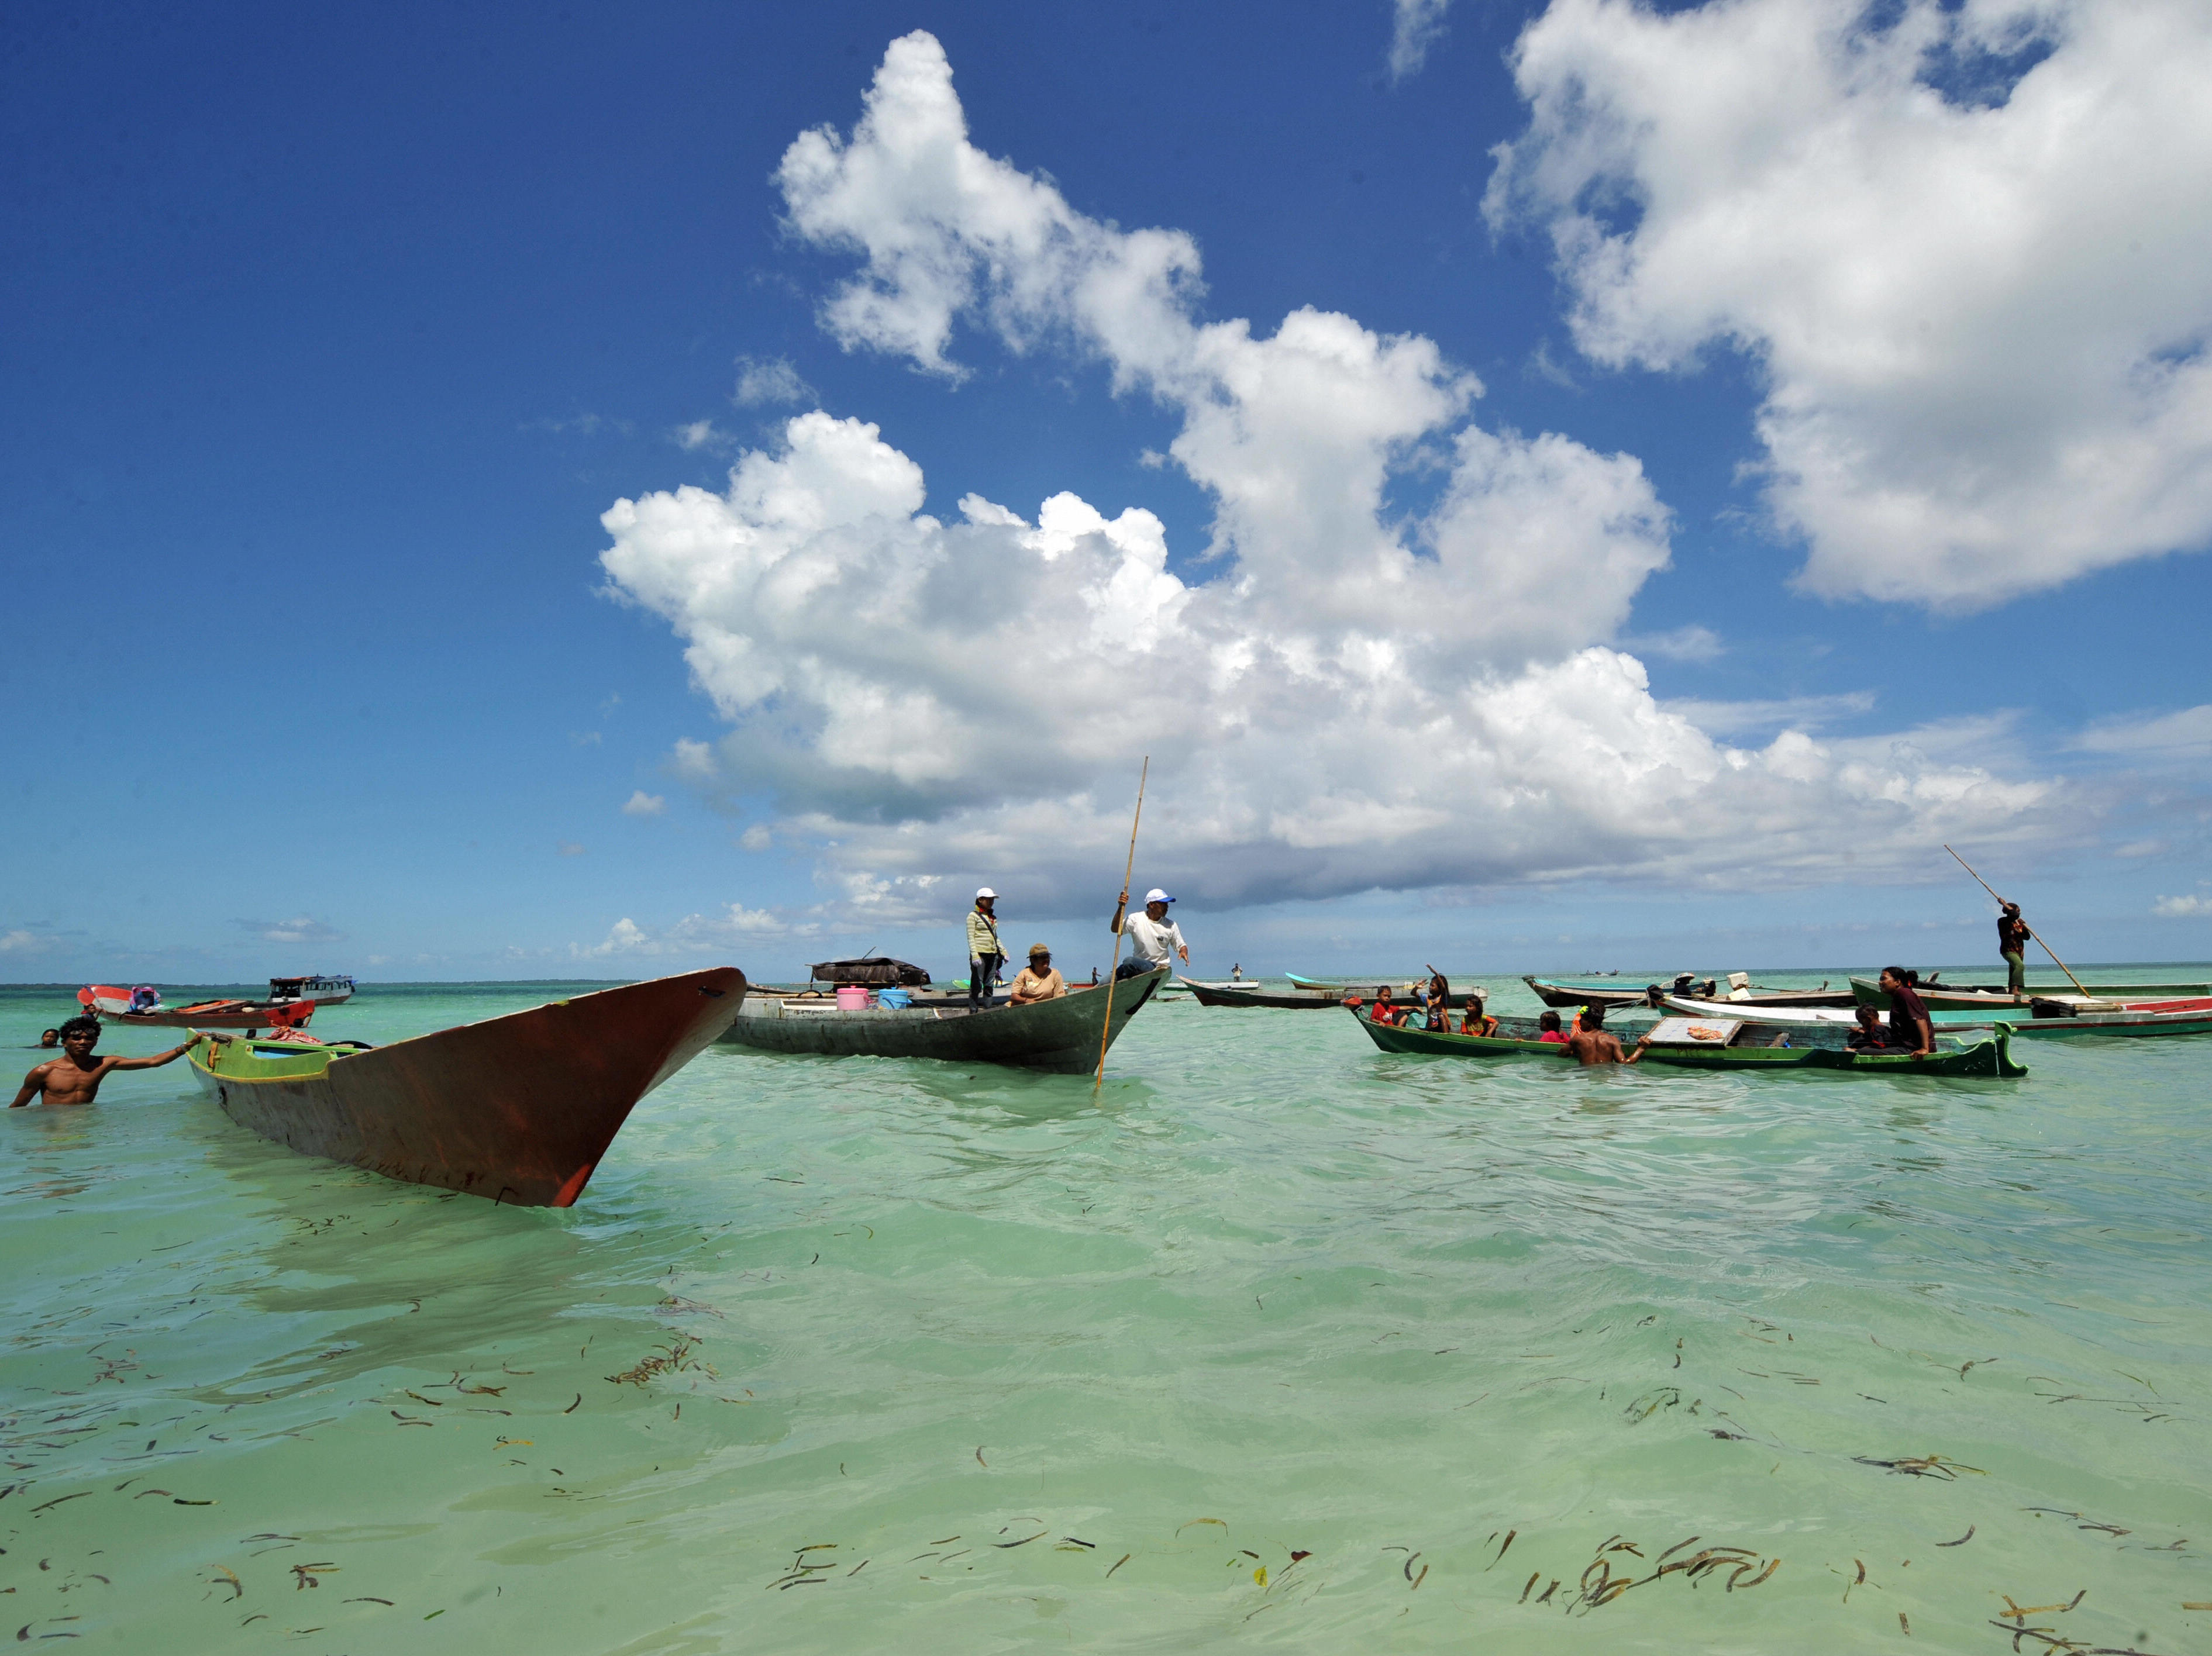 Fishermen arrive on Wakatobi island in Sulawesi waters off eastern Indonesia in 2009. In the 19th century, the island's rich and unique biodiversity helped Wallace understand how species adapted to their environment -- and how regions are defined by the animals that live in them.